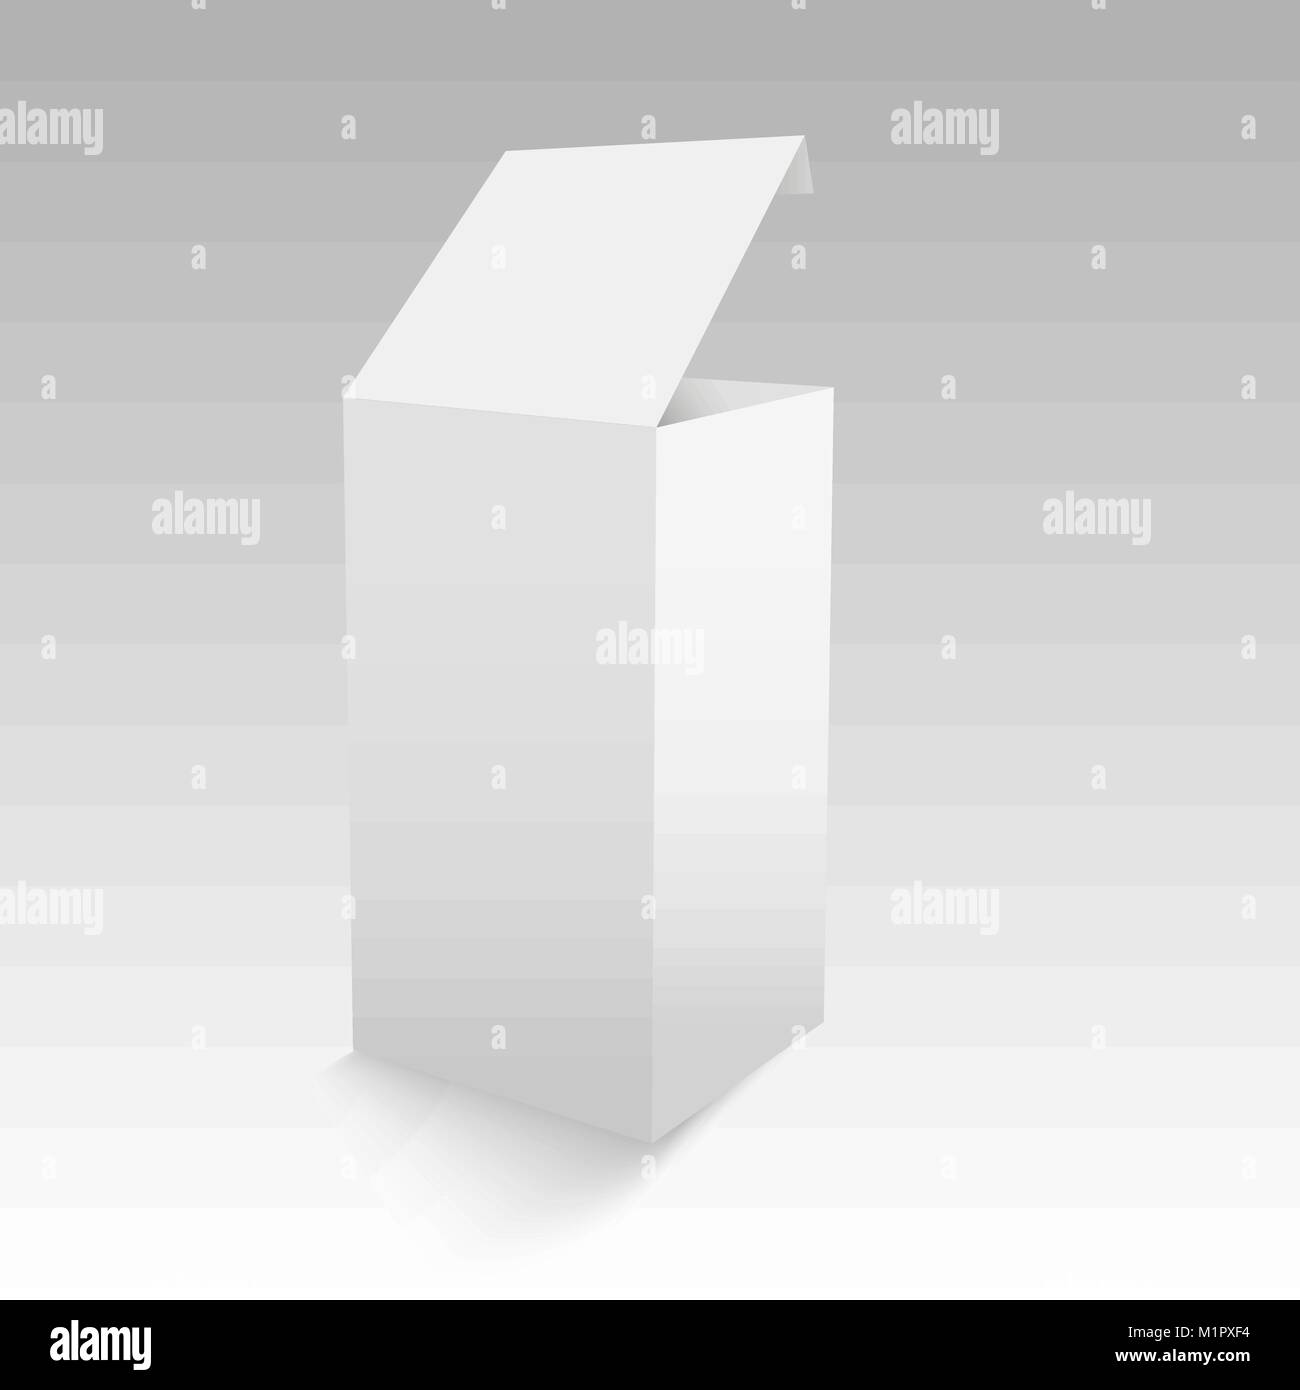 blank of opened paper or cardboard box template vector illustration